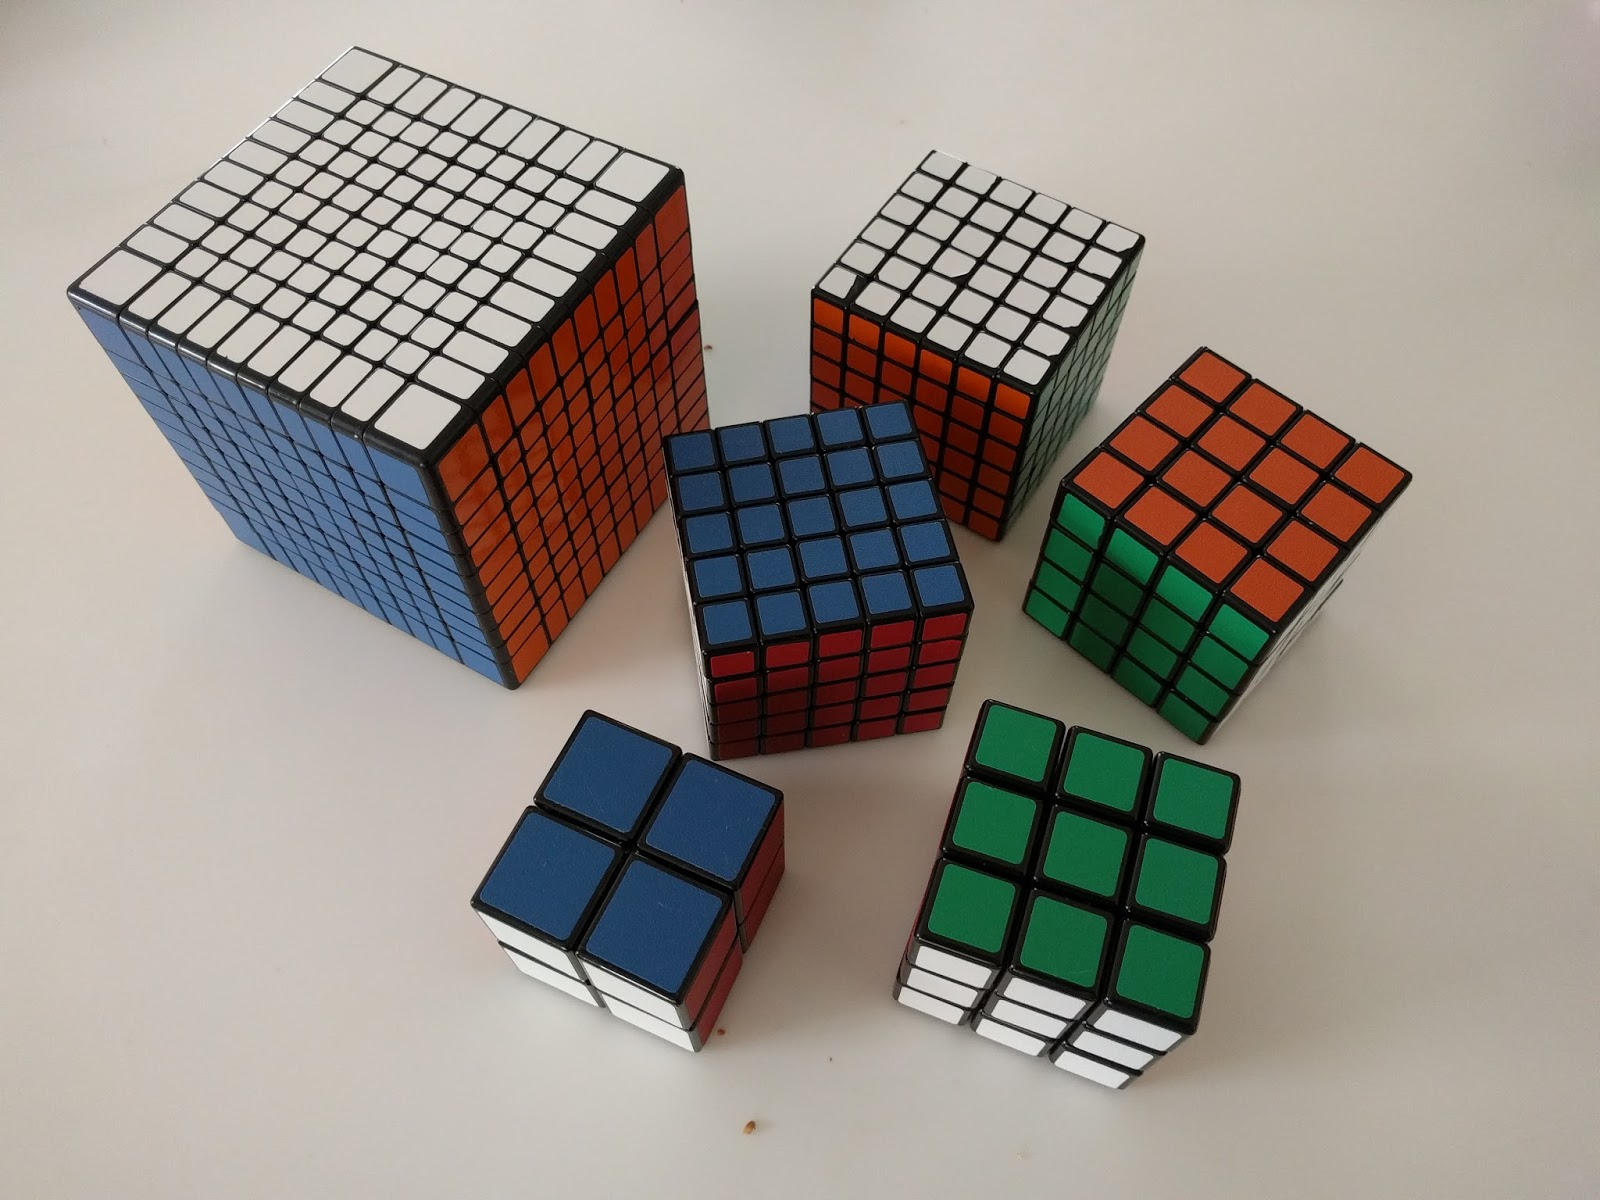 medium resolution of now before you go jumping head first you really need to practice with some smaller cubes first you look in that photo above and you ve got everything from